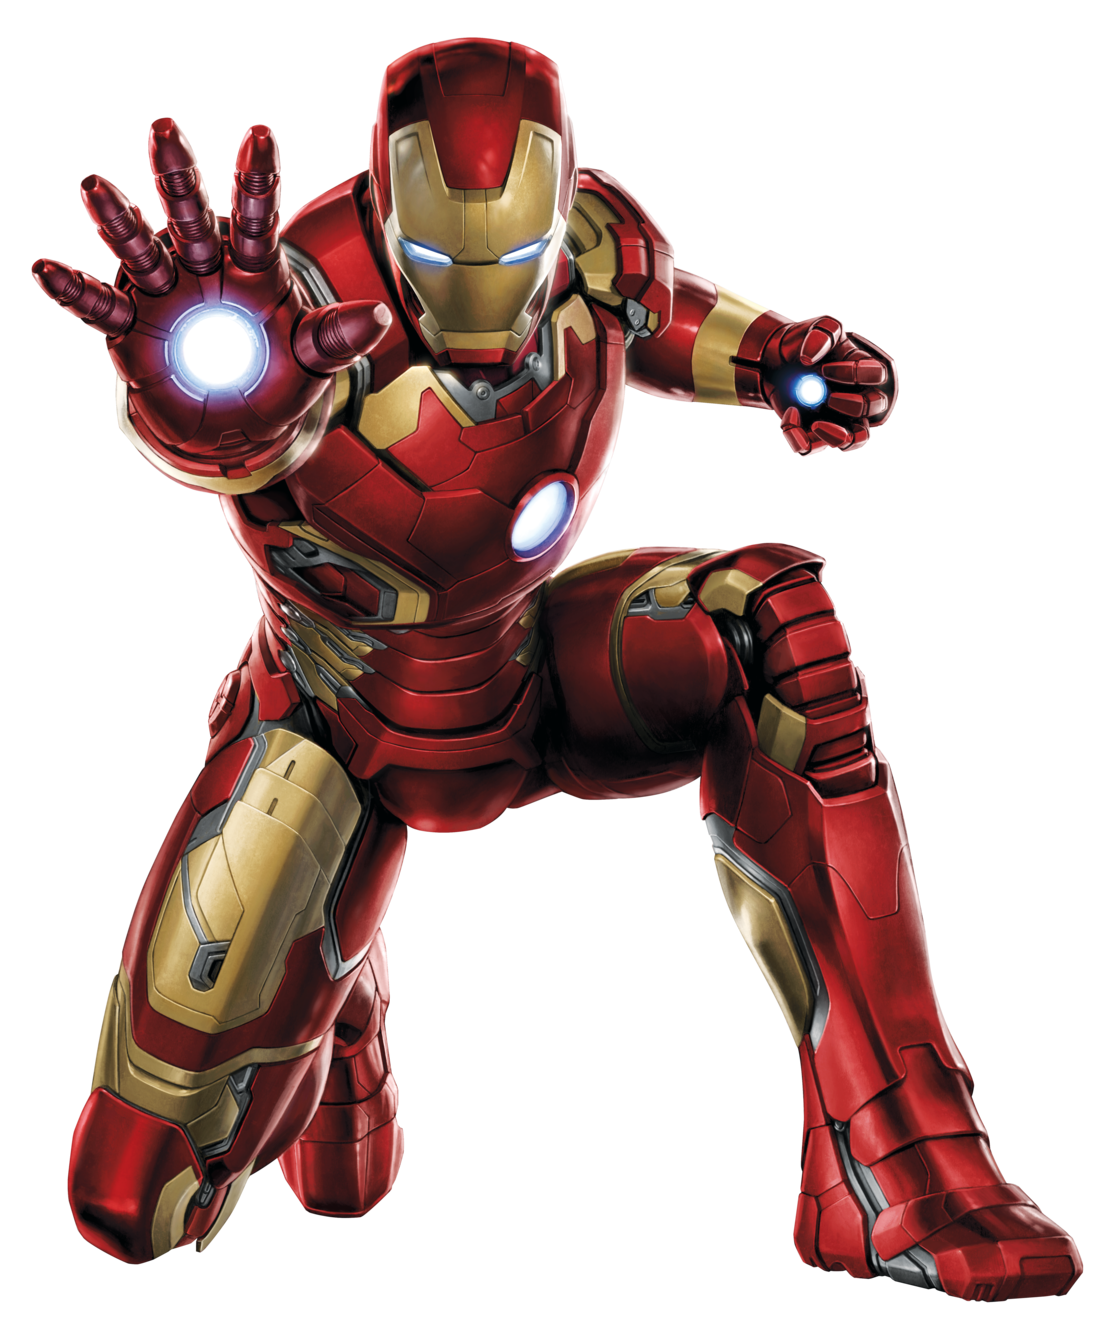 Ironman PNG images free download.